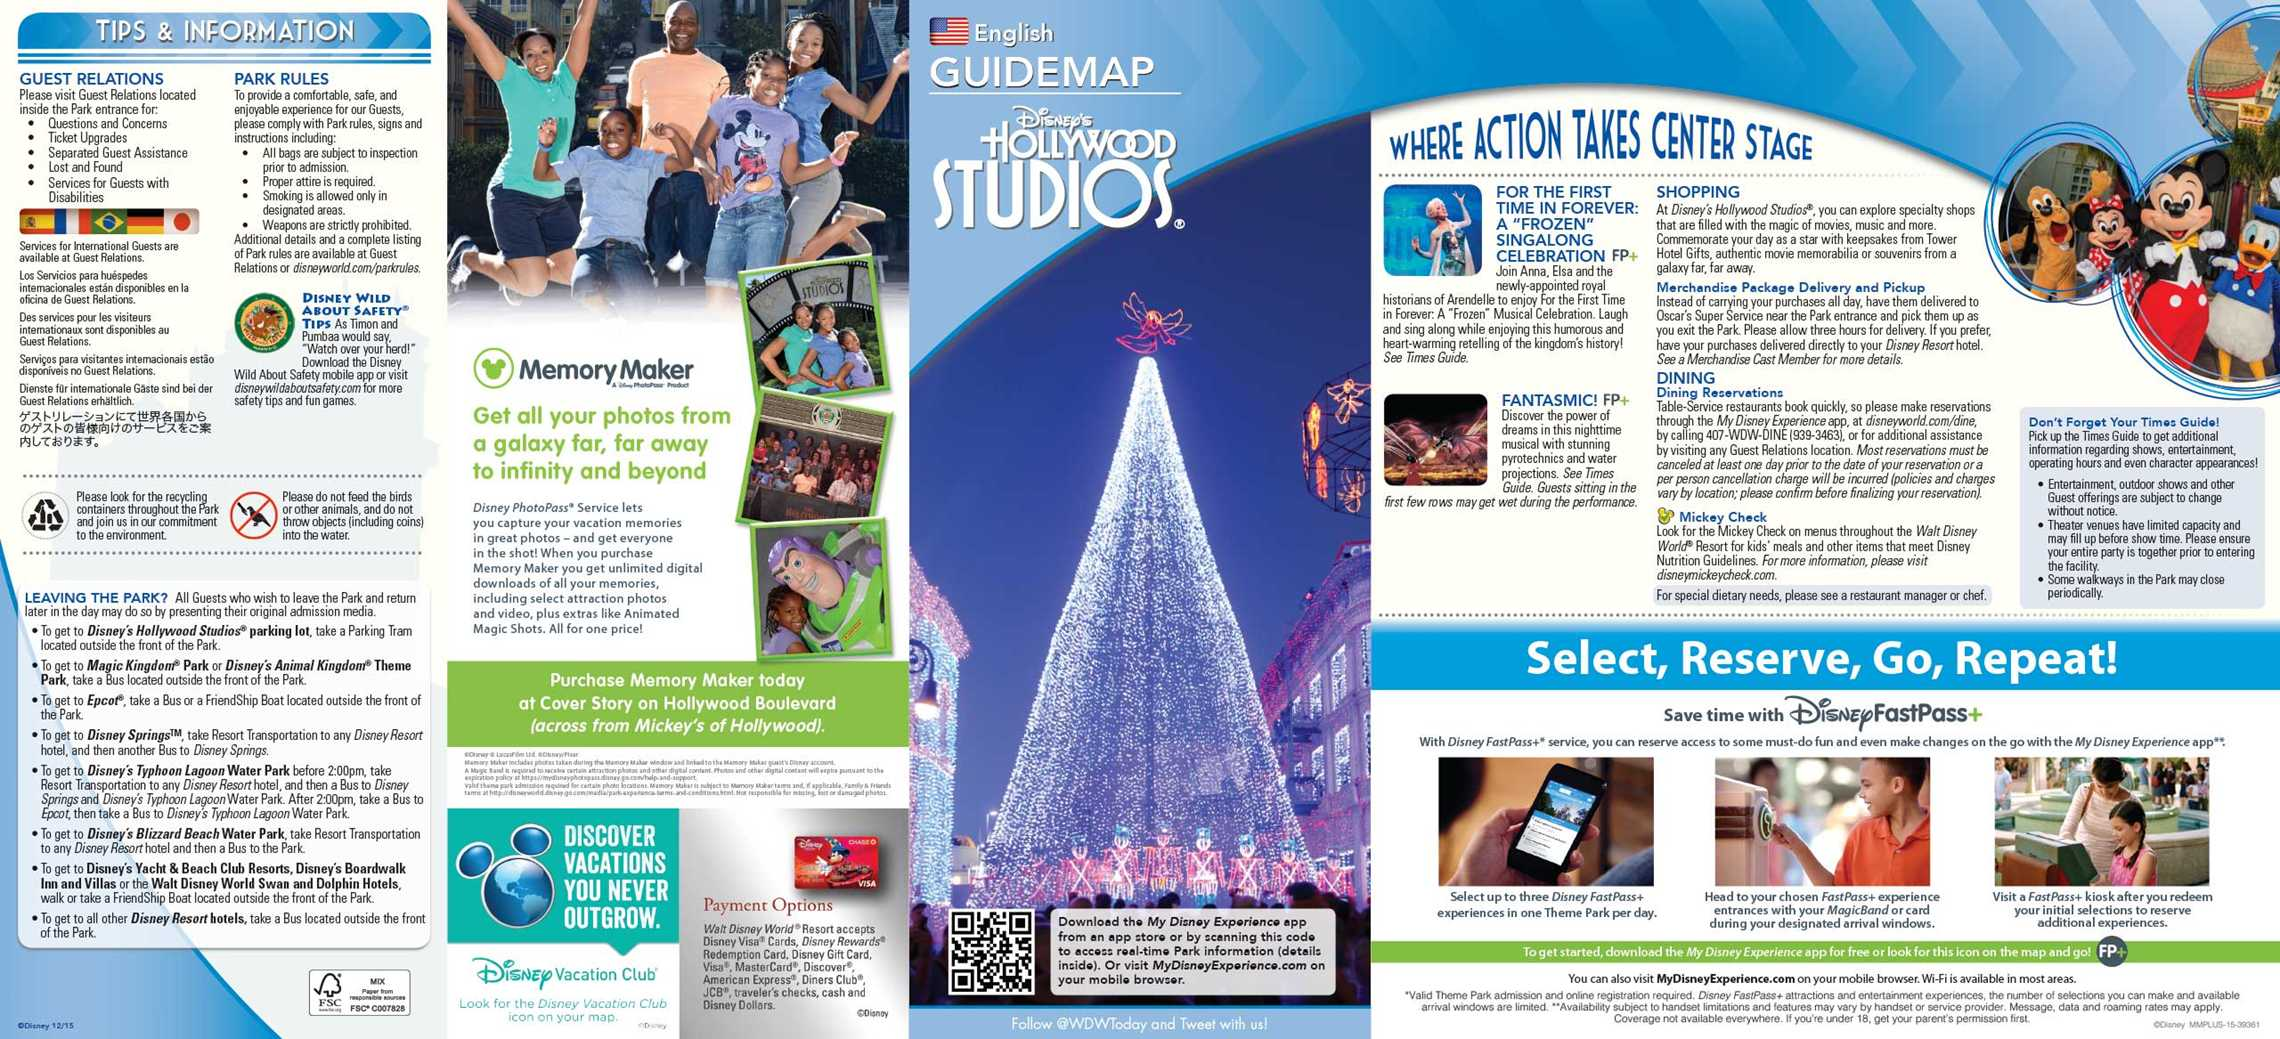 Disney 39 s Hollywood Studios Guide Map December 2015 Photo 1 of 2